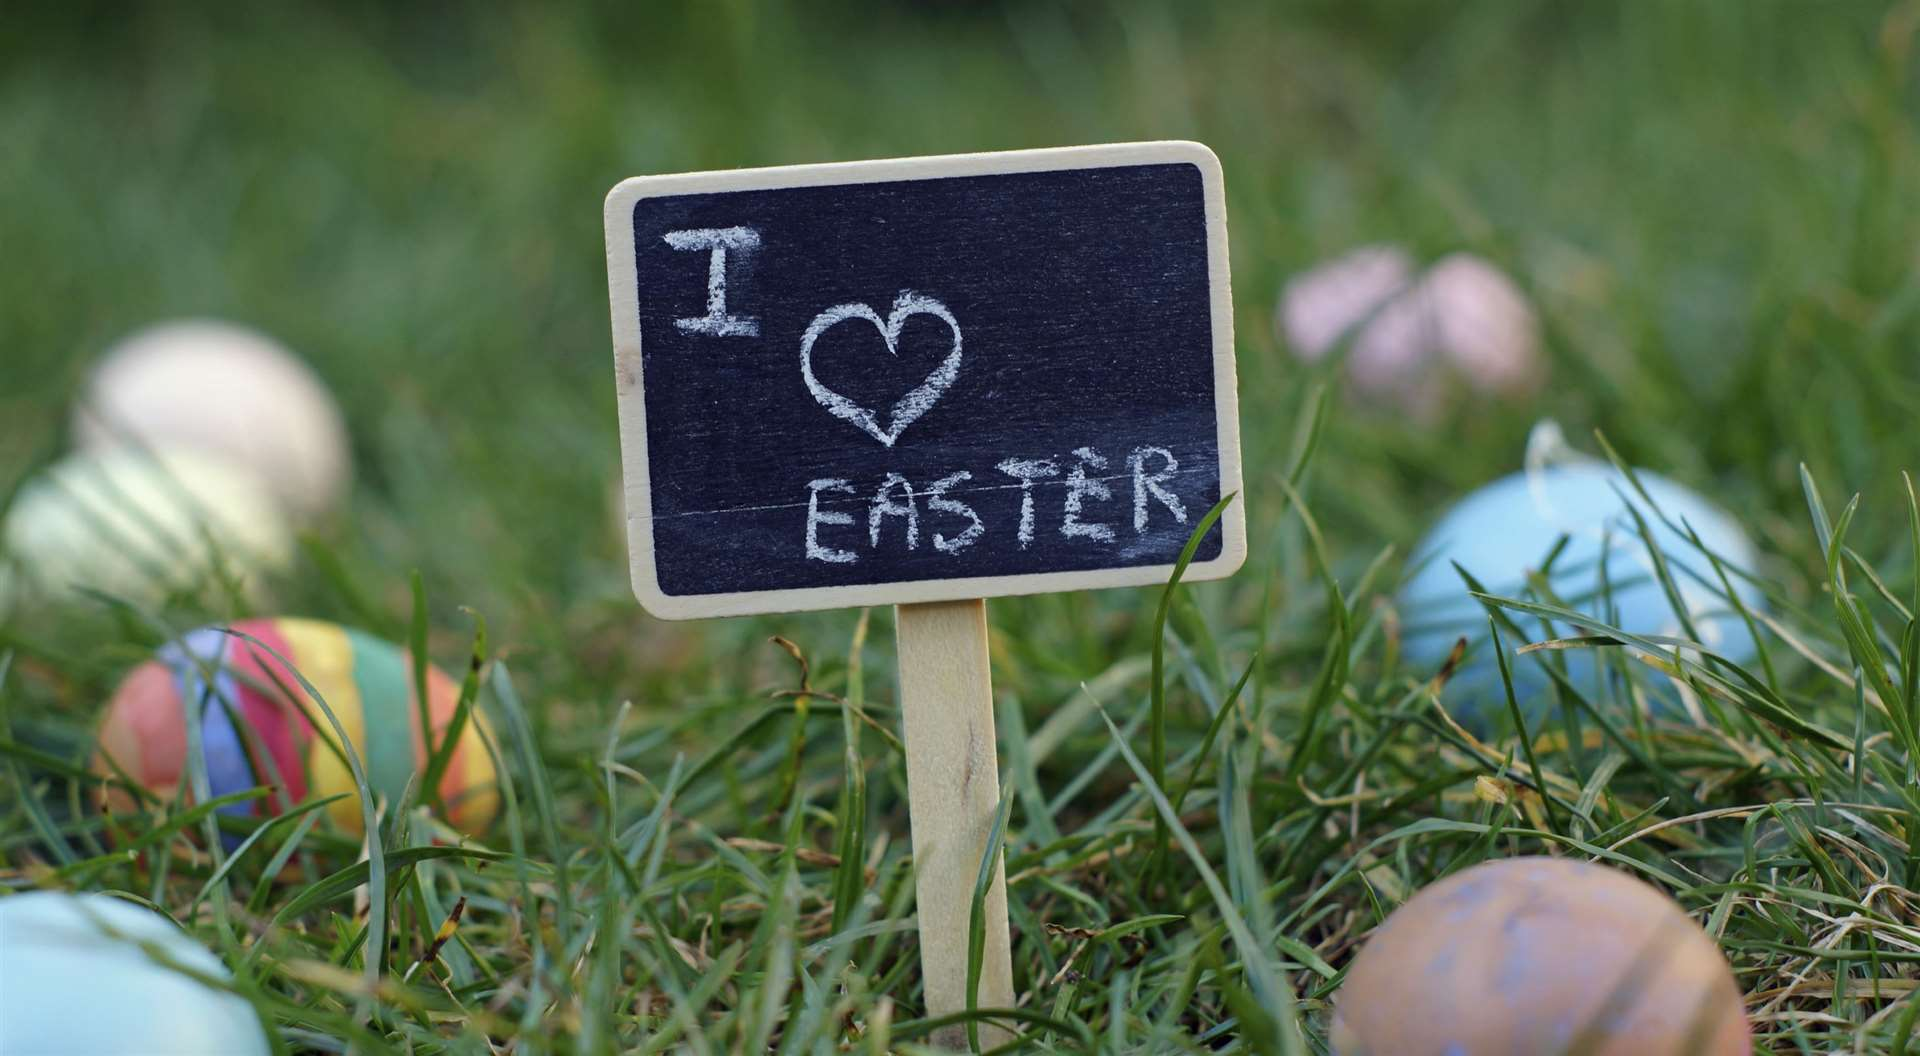 The long Easter weekend has lots going on